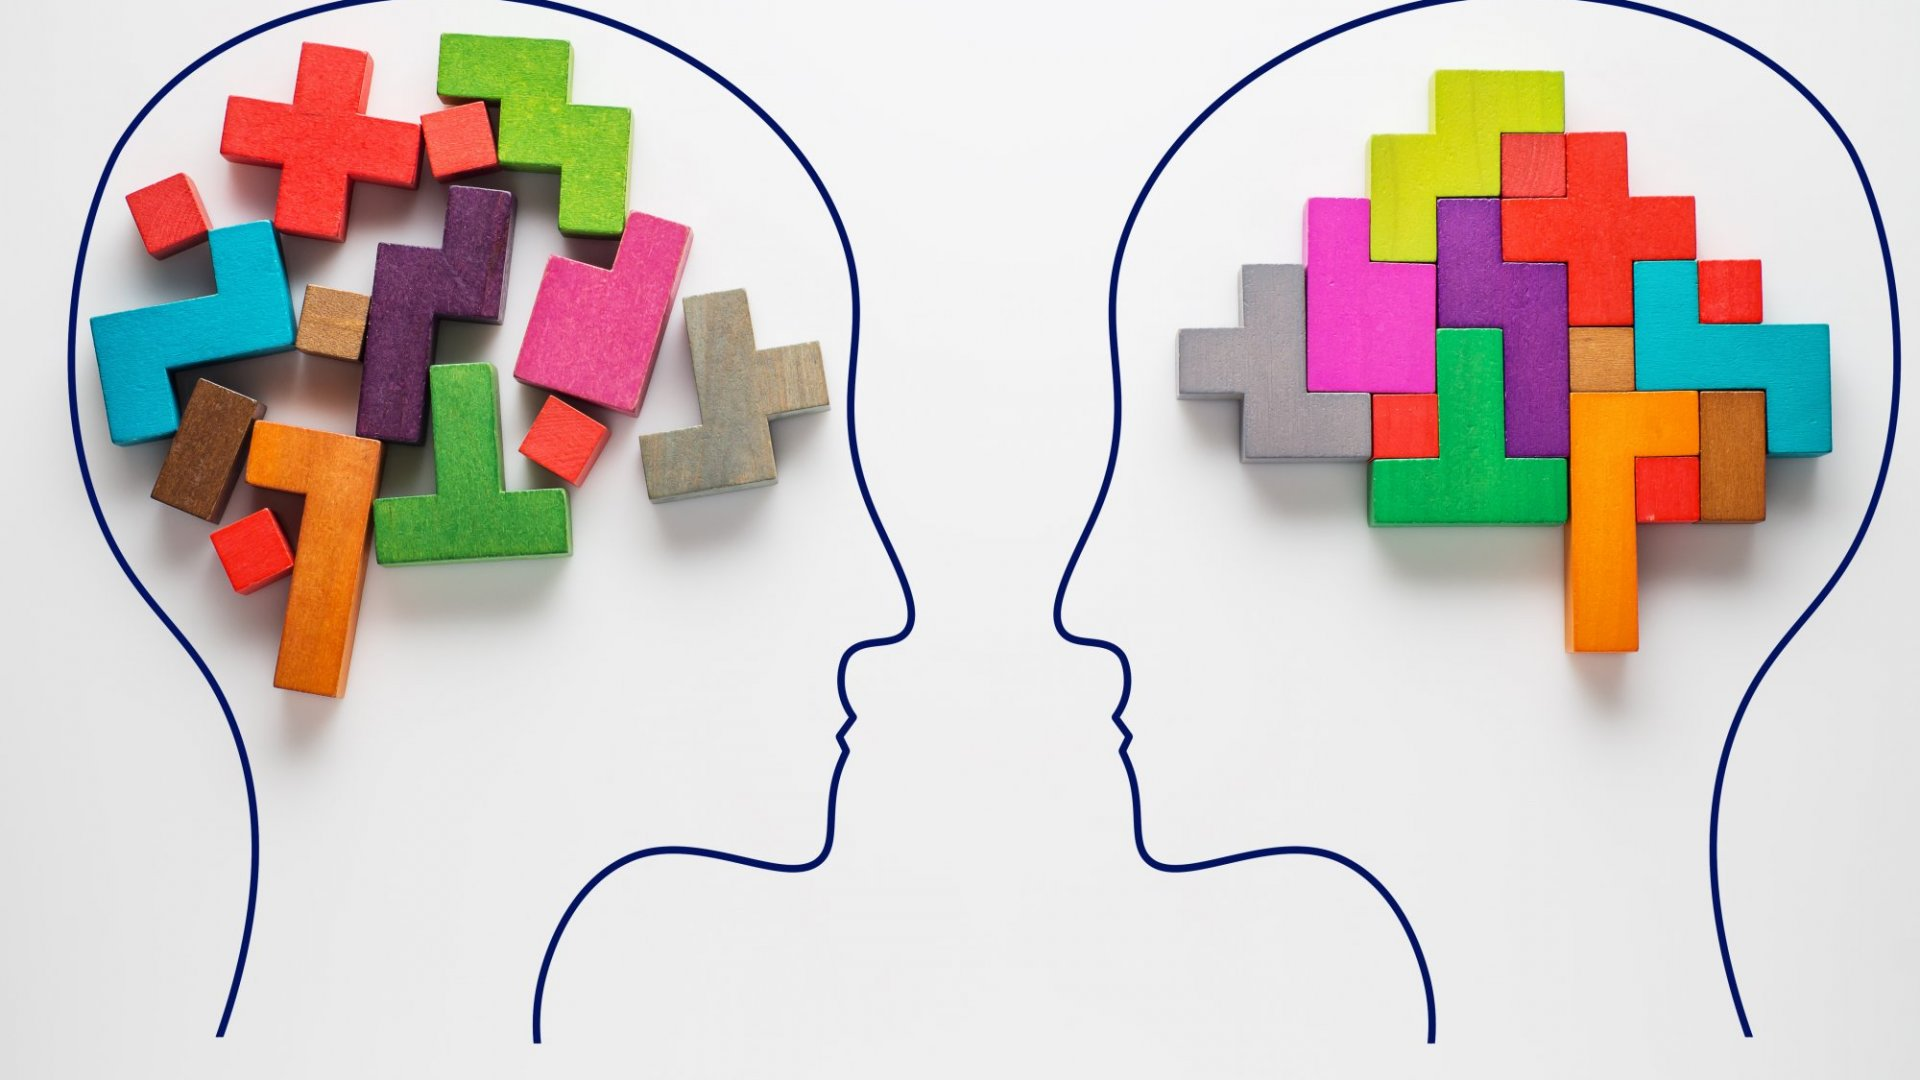 A Growth Mindset Is Powerful, but Only if You Know How to Use it